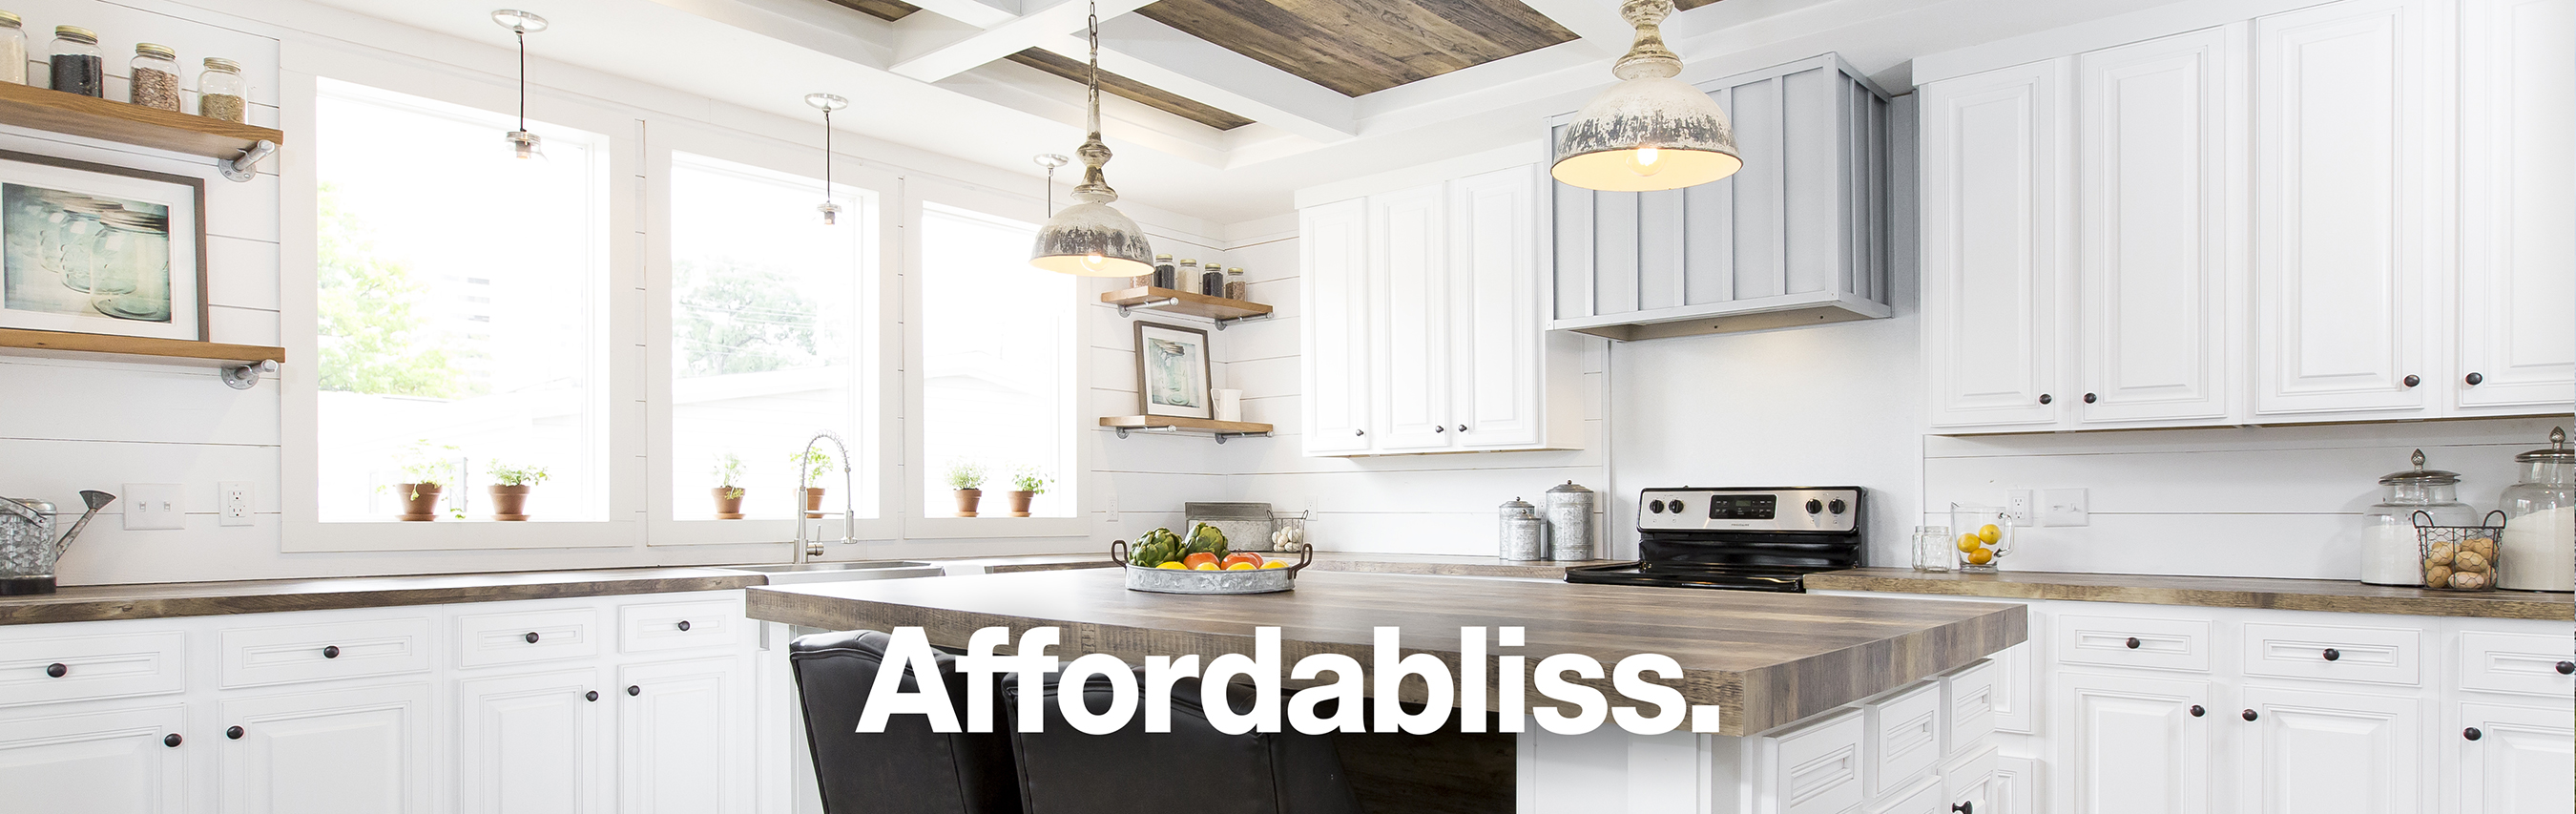 "Modern kitchen with text tagline overlay saying, ""Affordabliss."""